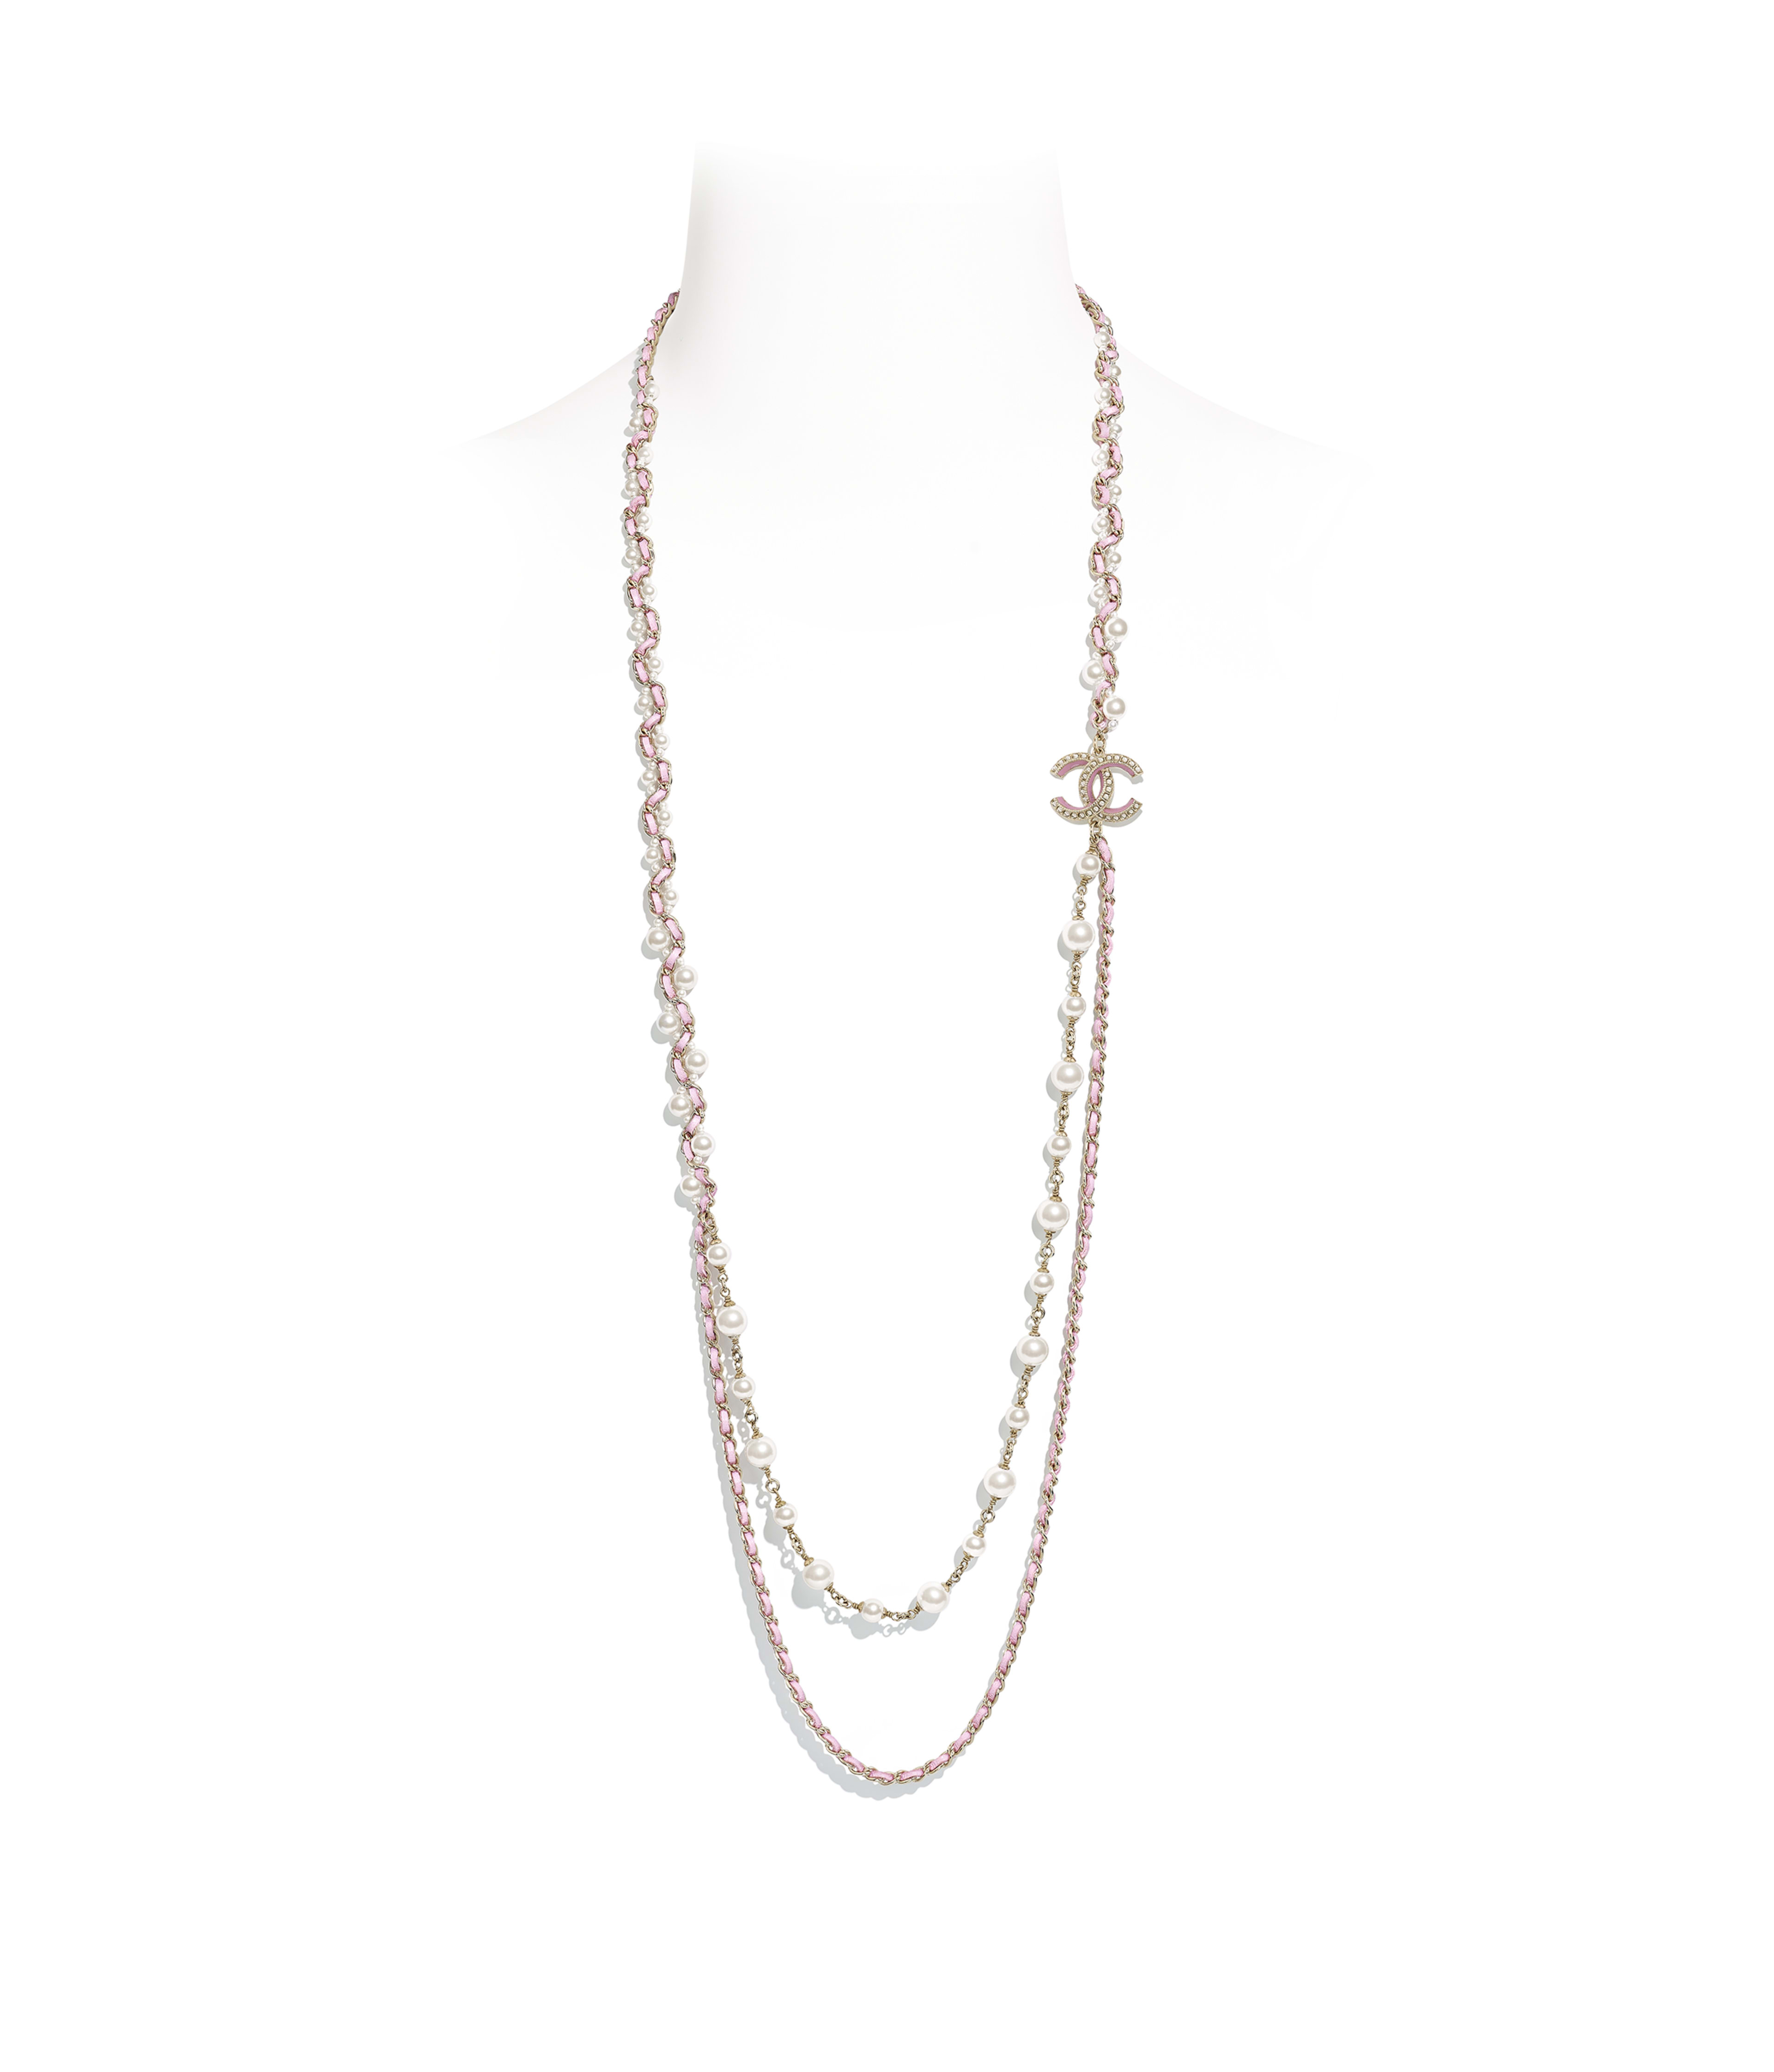 4d6a7d7f2b27 Long Necklace Metal, Glass Pearls & Calfskin, Gold, Pink & Pearly White  Ref. AB1502Y47640Z9044